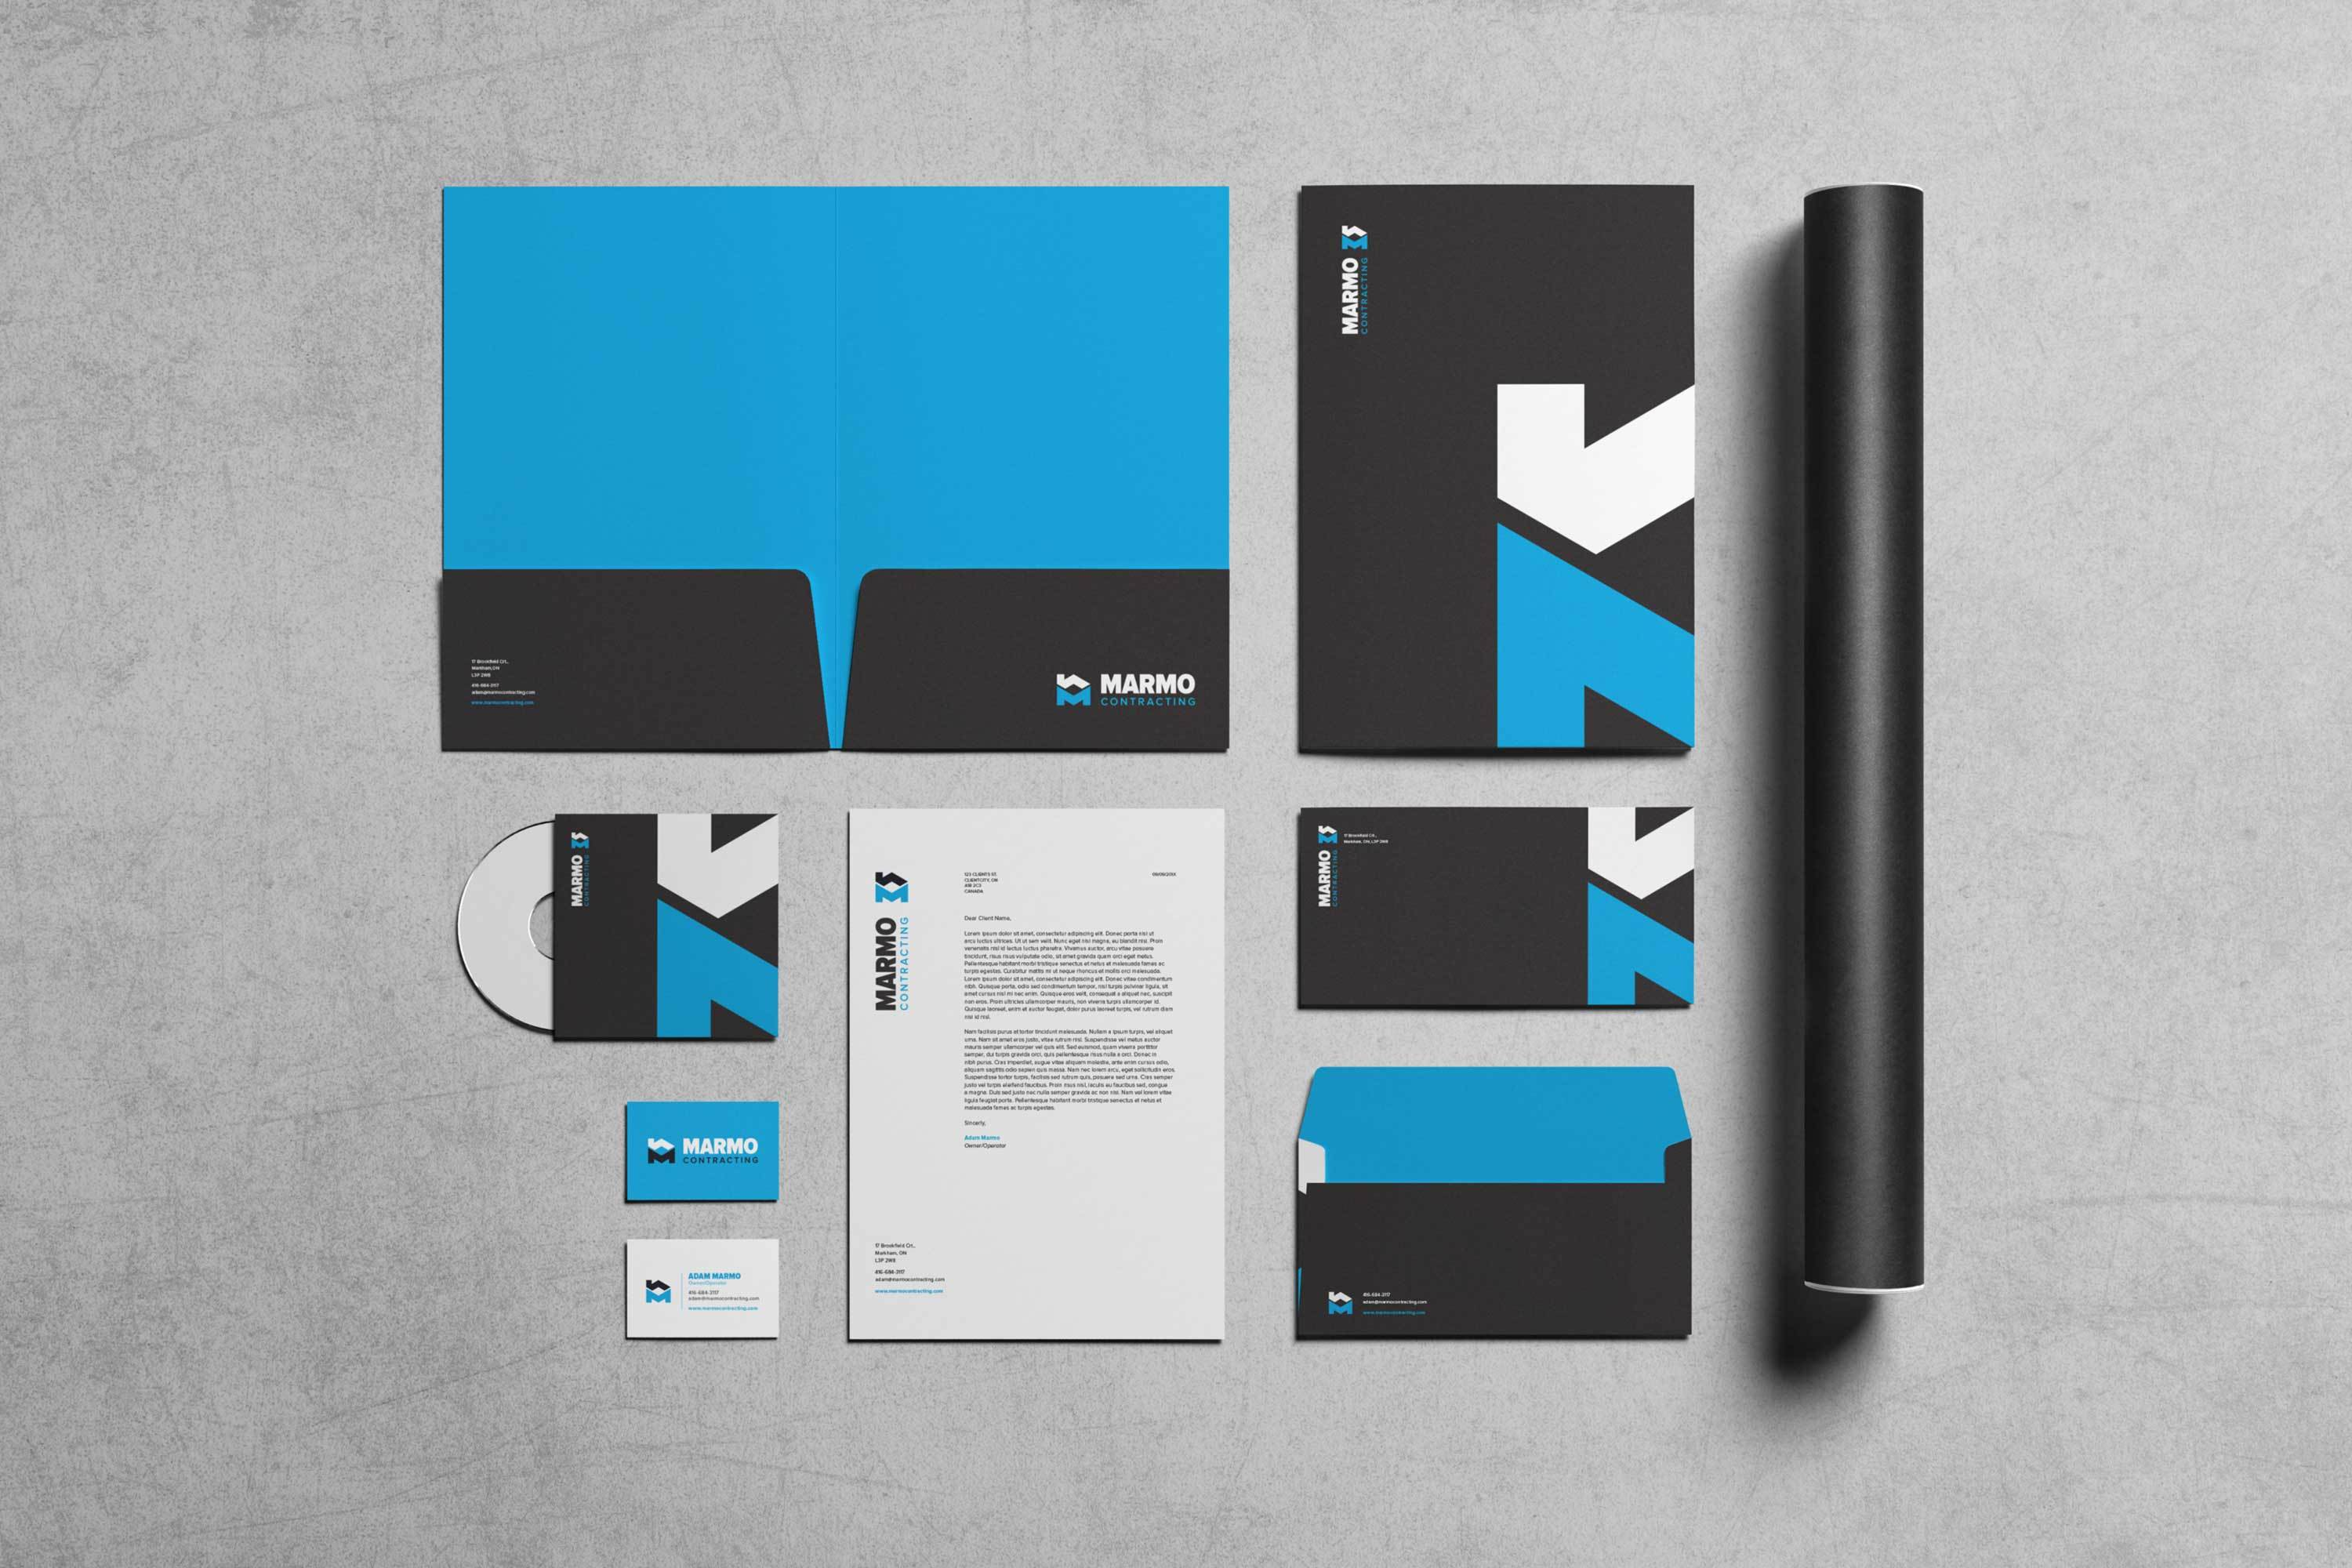 Marmo Contrating Business Collateral